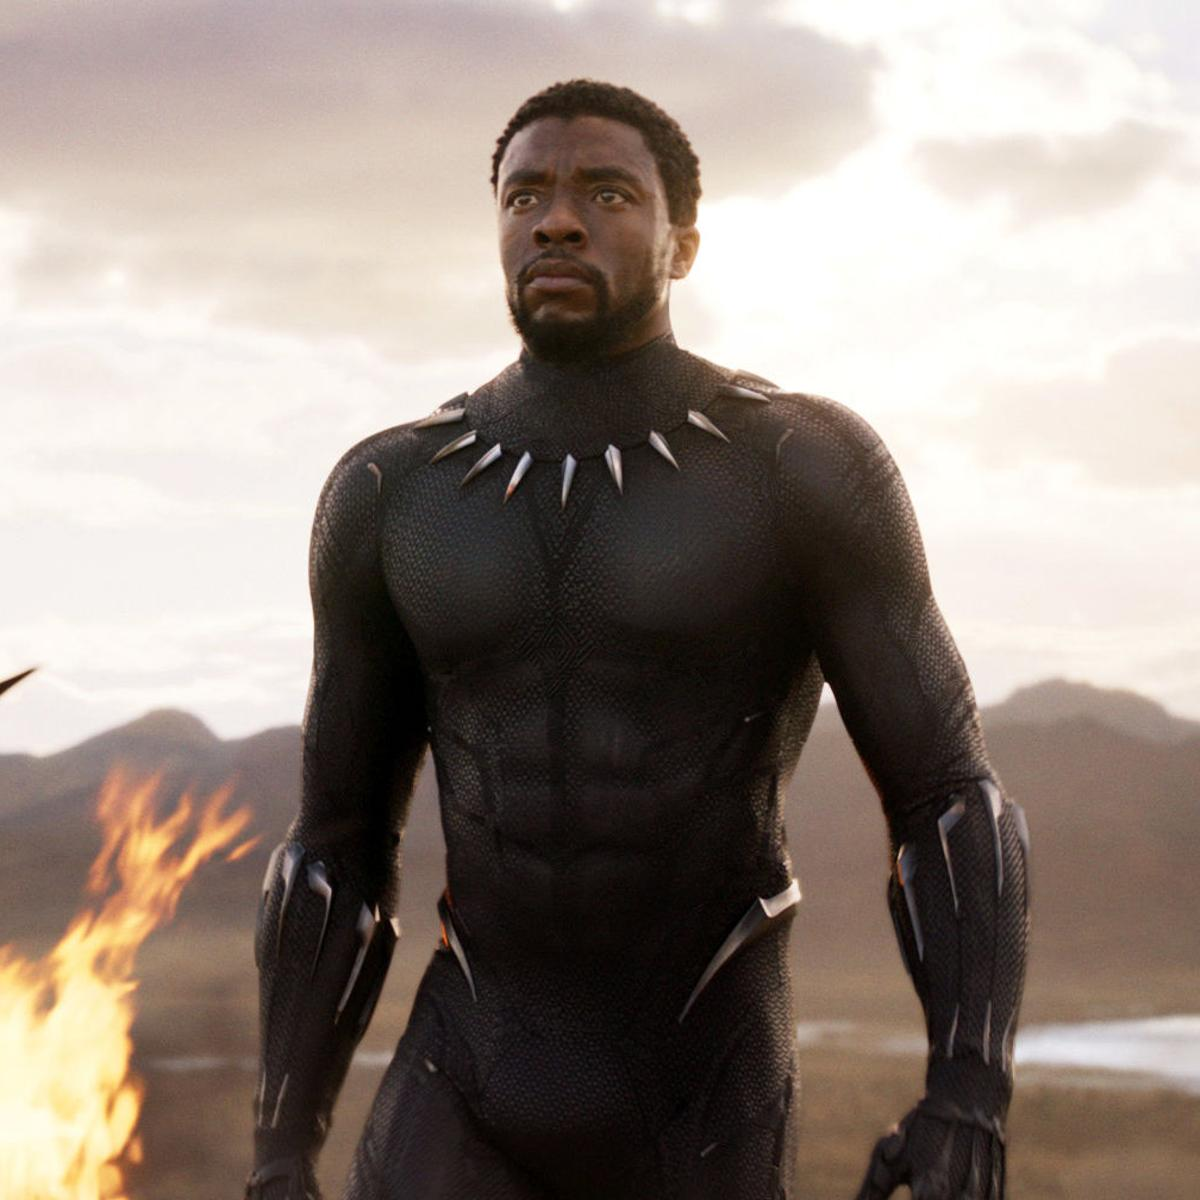 black-panther-disney-intro-pays-tribute-to-chadwick-boseman-to-celebrate-his-44th-birthday